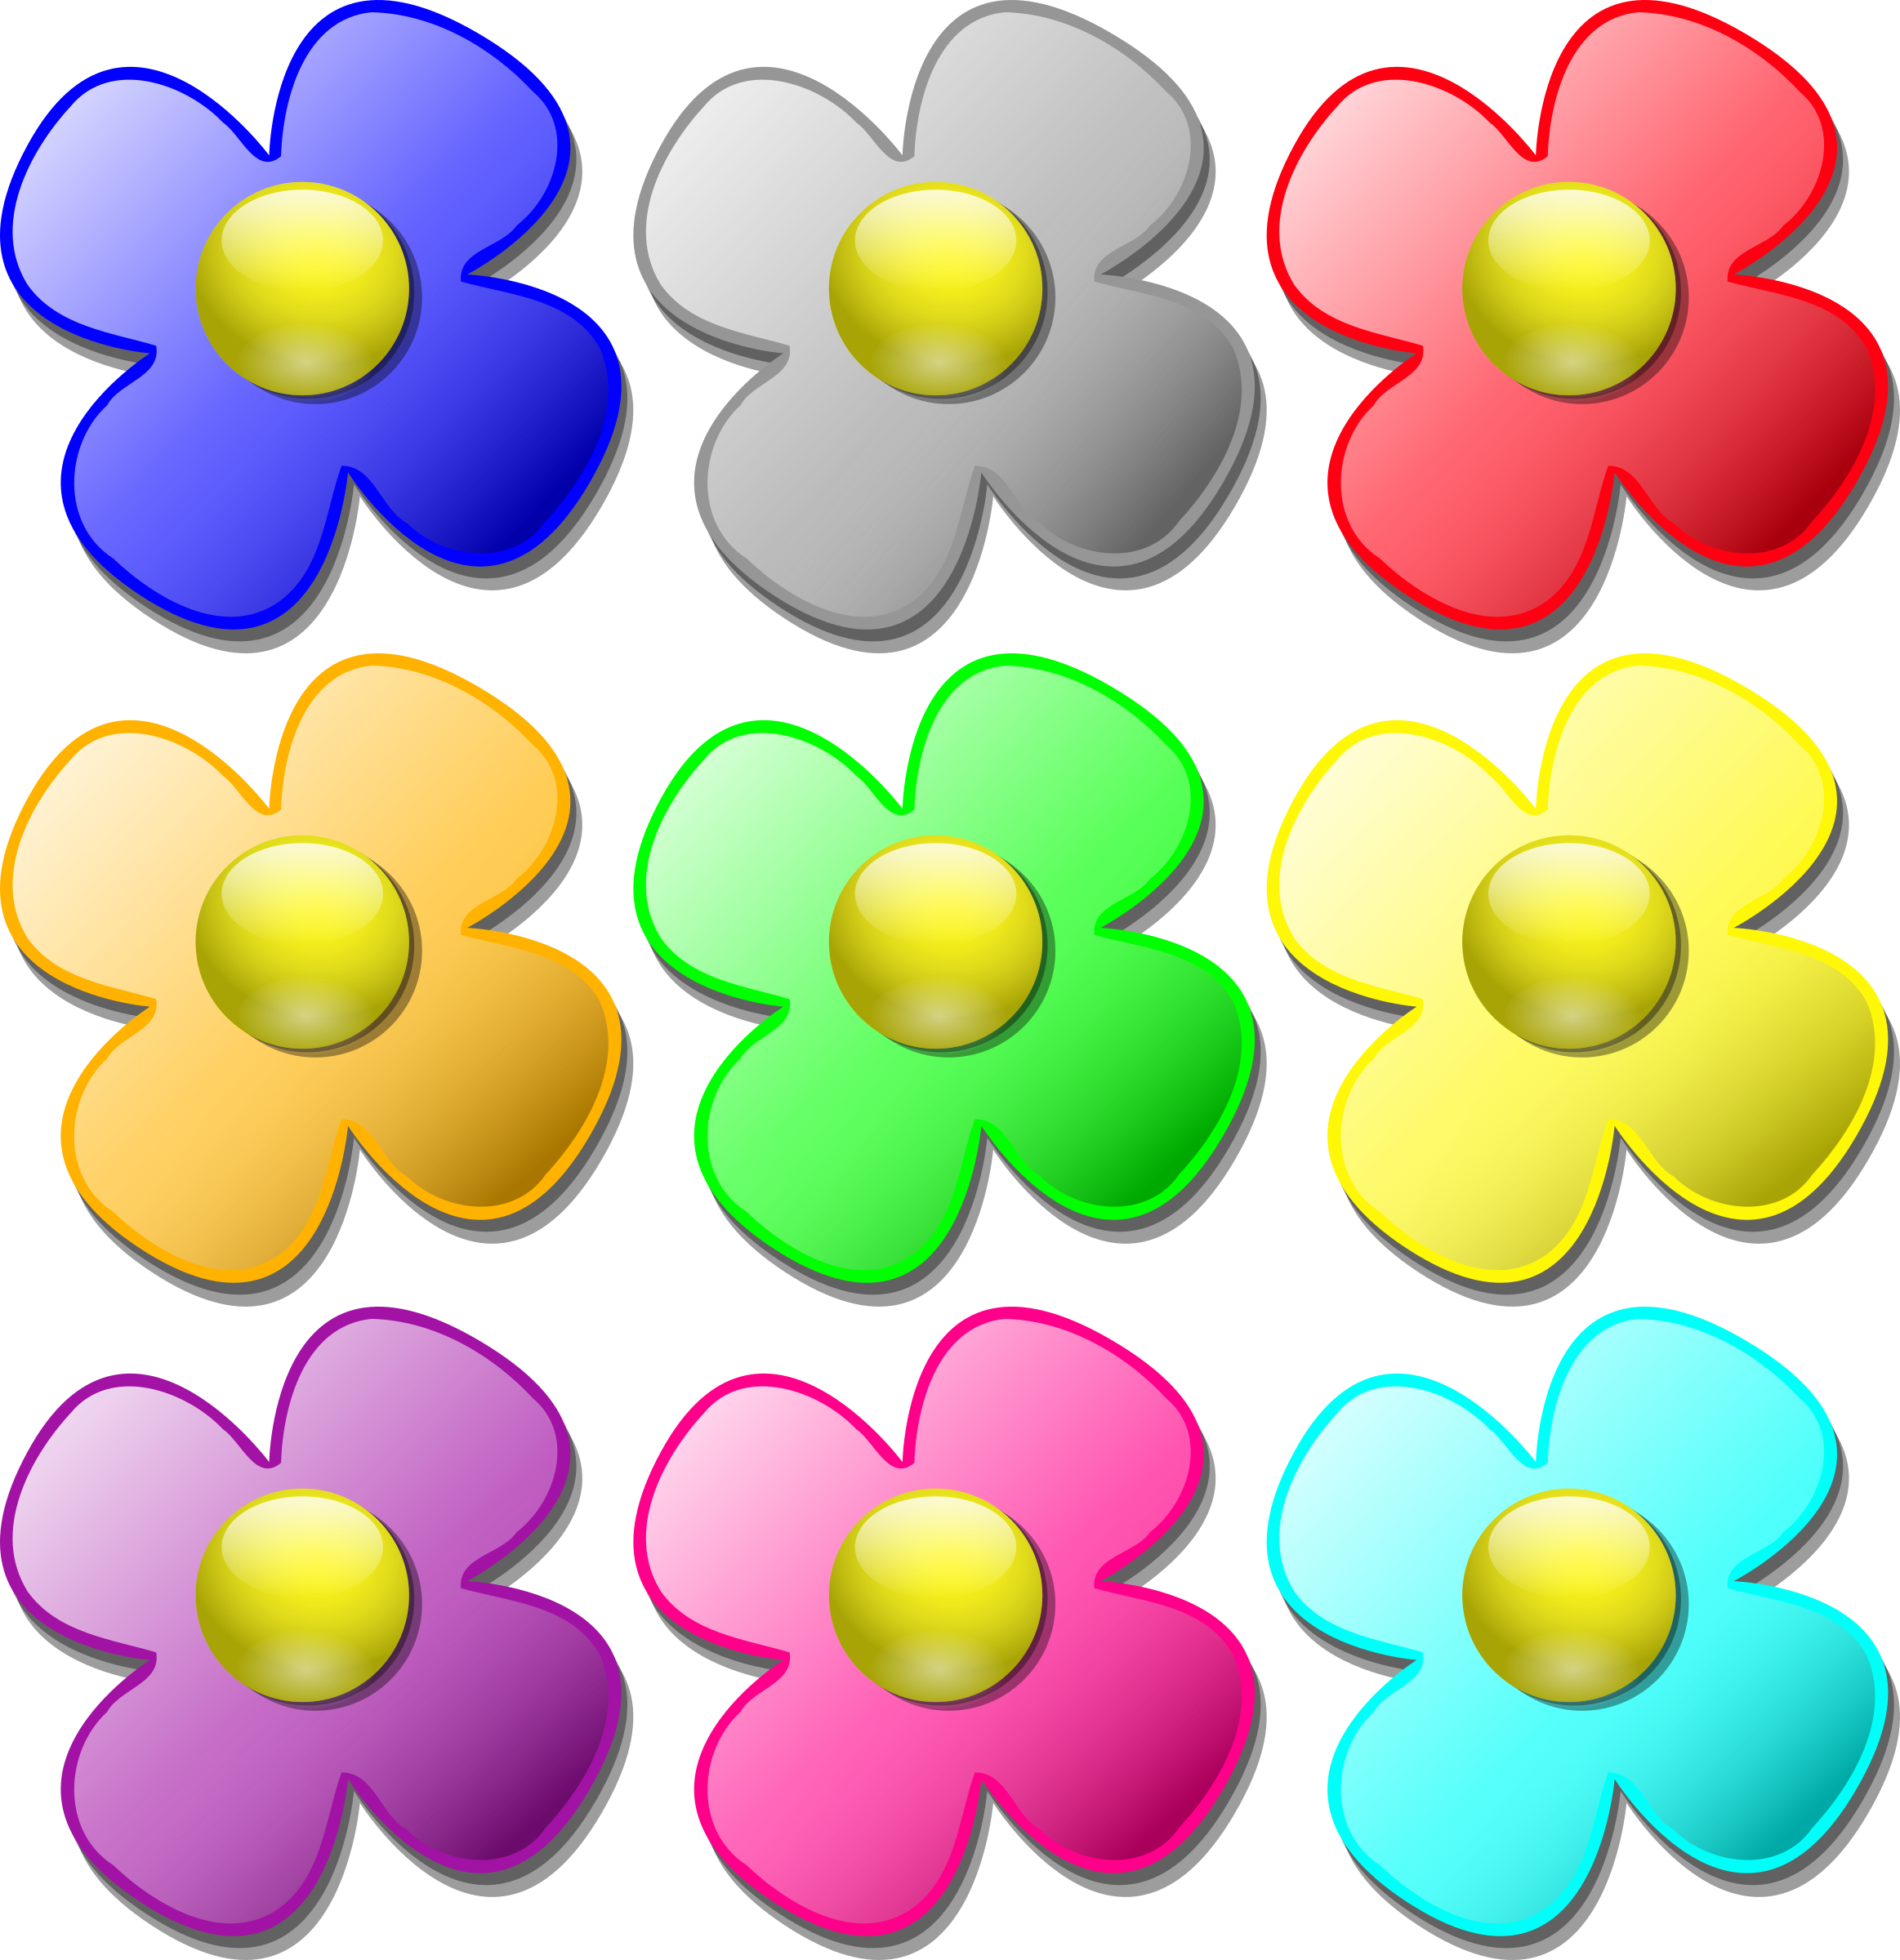 Marbles clipart transparent. Game flowers big image